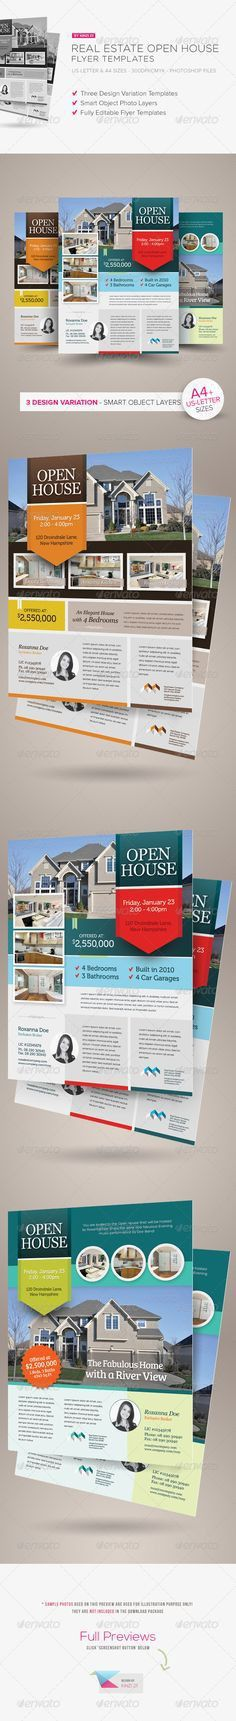 real estate signs - Google Search | Signage | Pinterest | Real ...